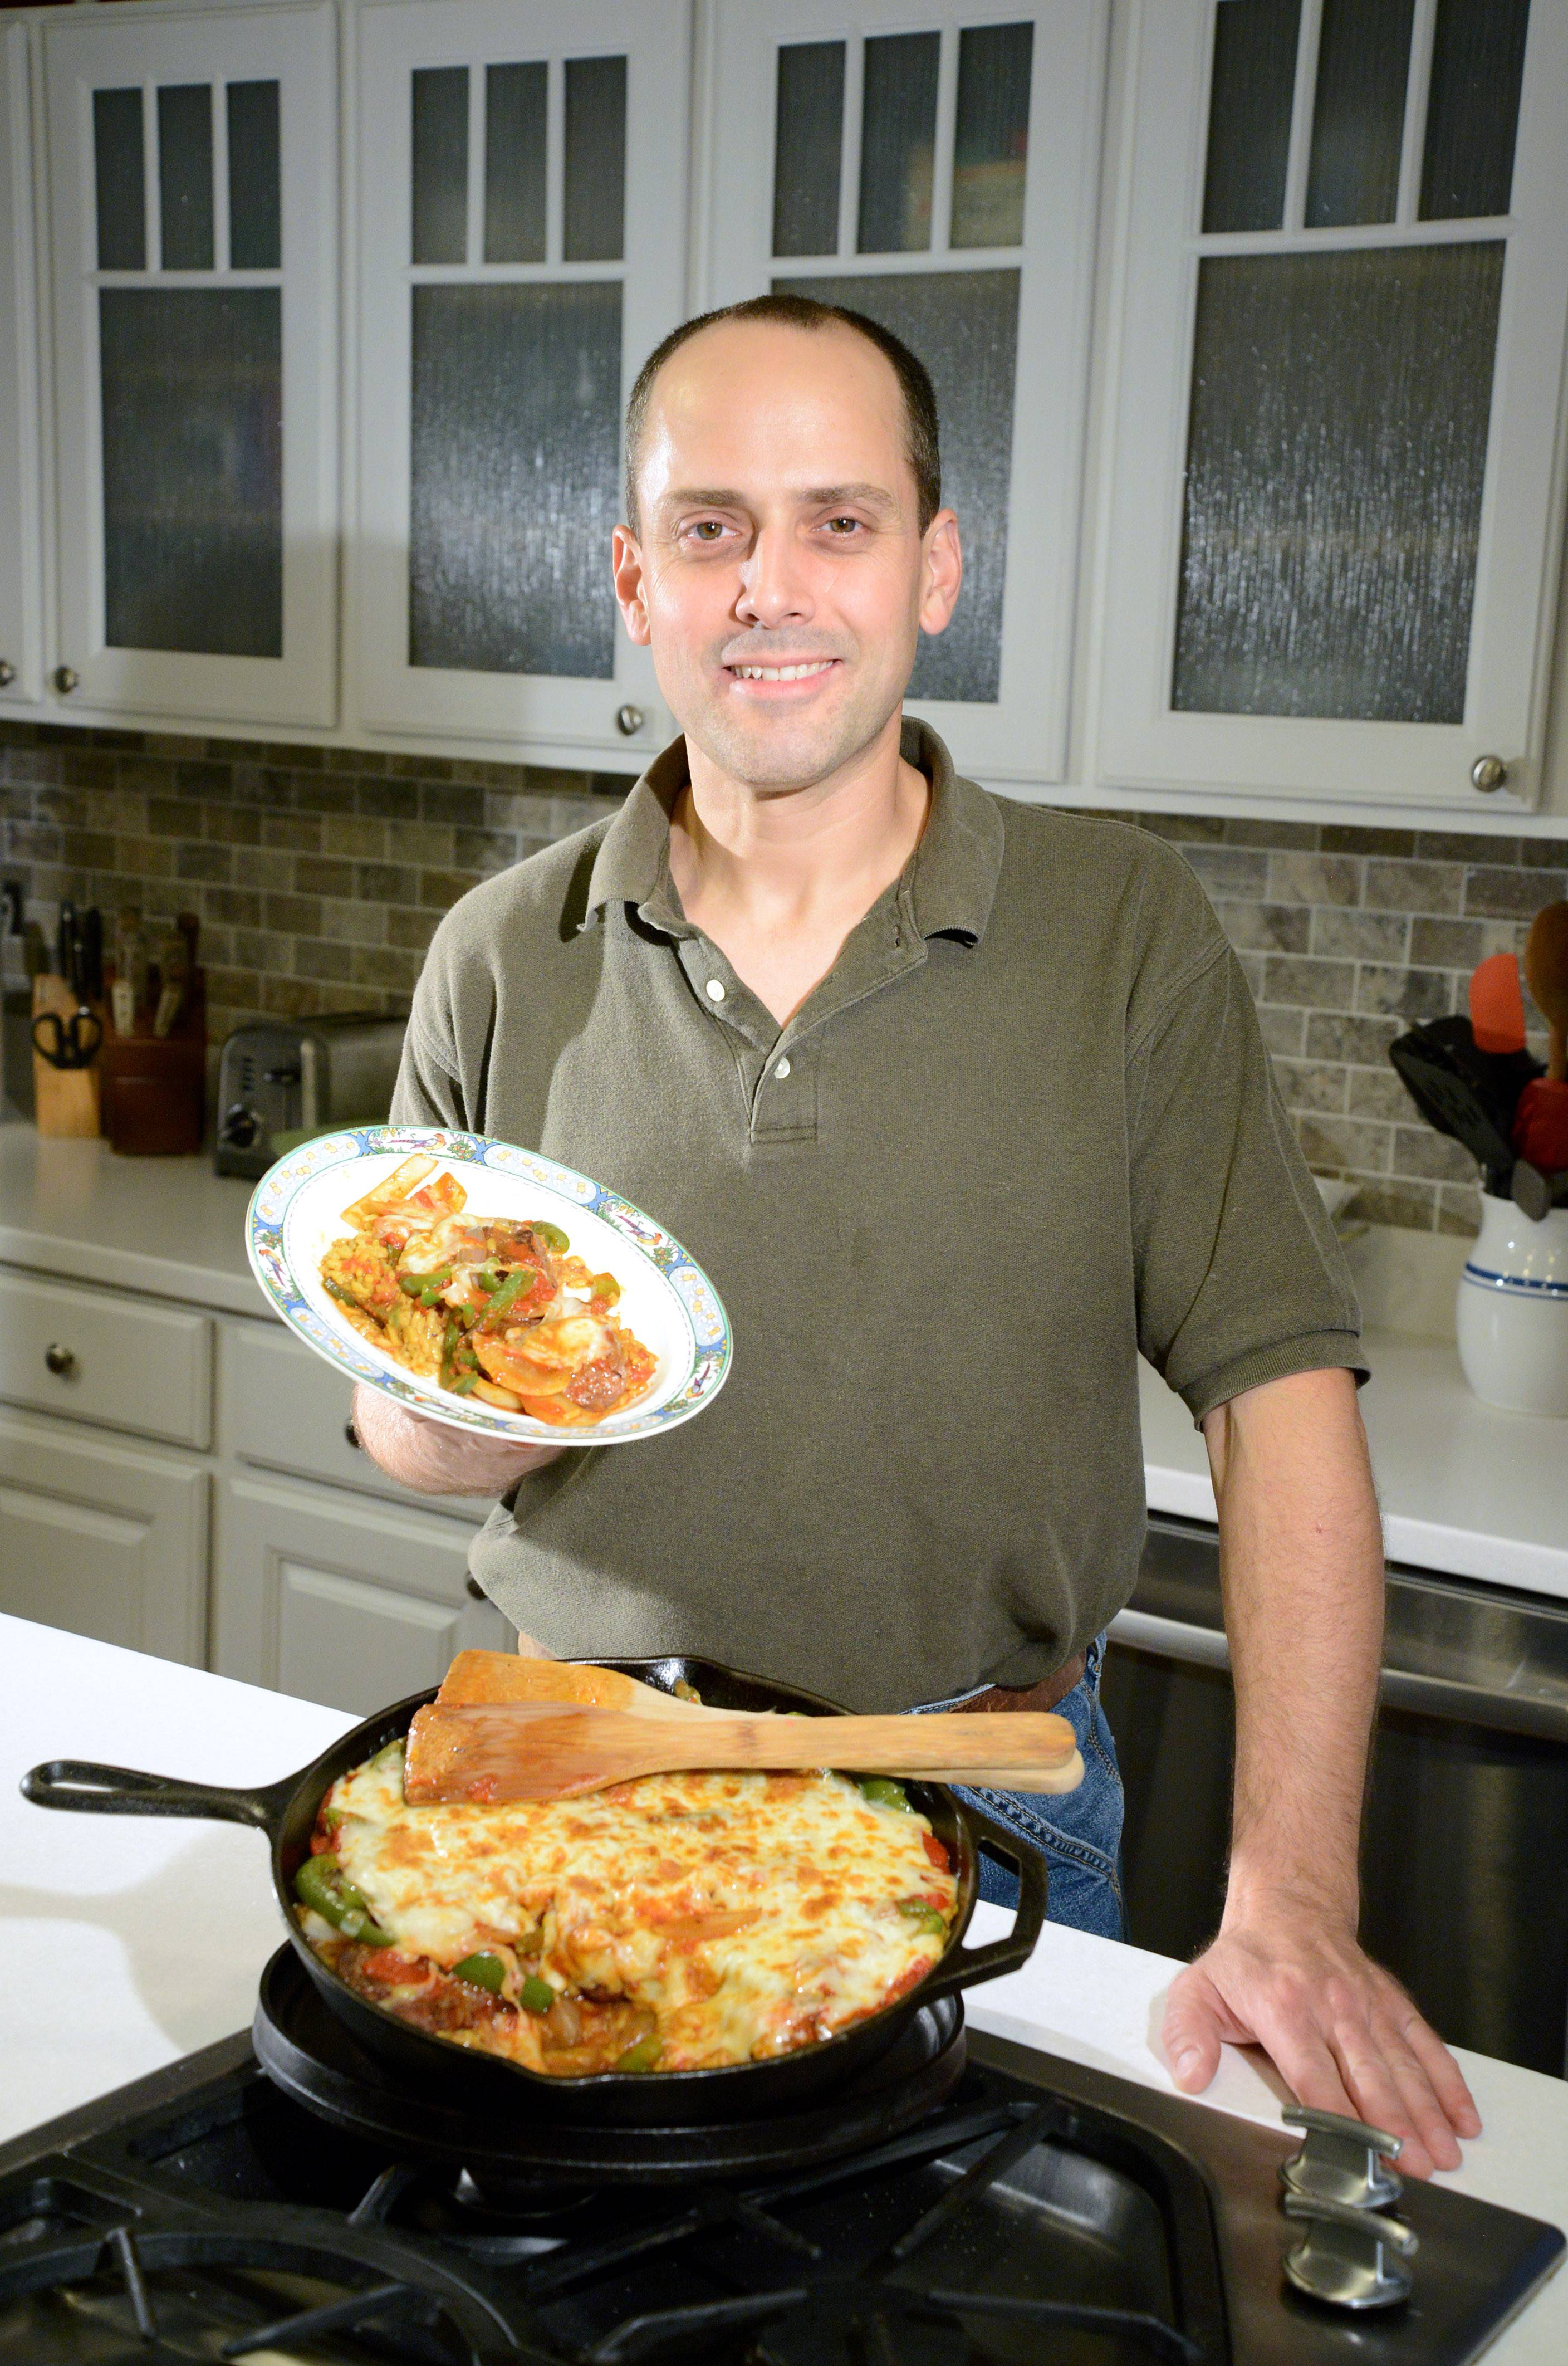 Brian Peterson of Elgin hunted and butchered the venison that goes into his Italian Hunter's Pie. The dish can be made in a cast iron skillet, or the meat can be seared on the grill and transferred to a baking pan with the remaining ingredients.